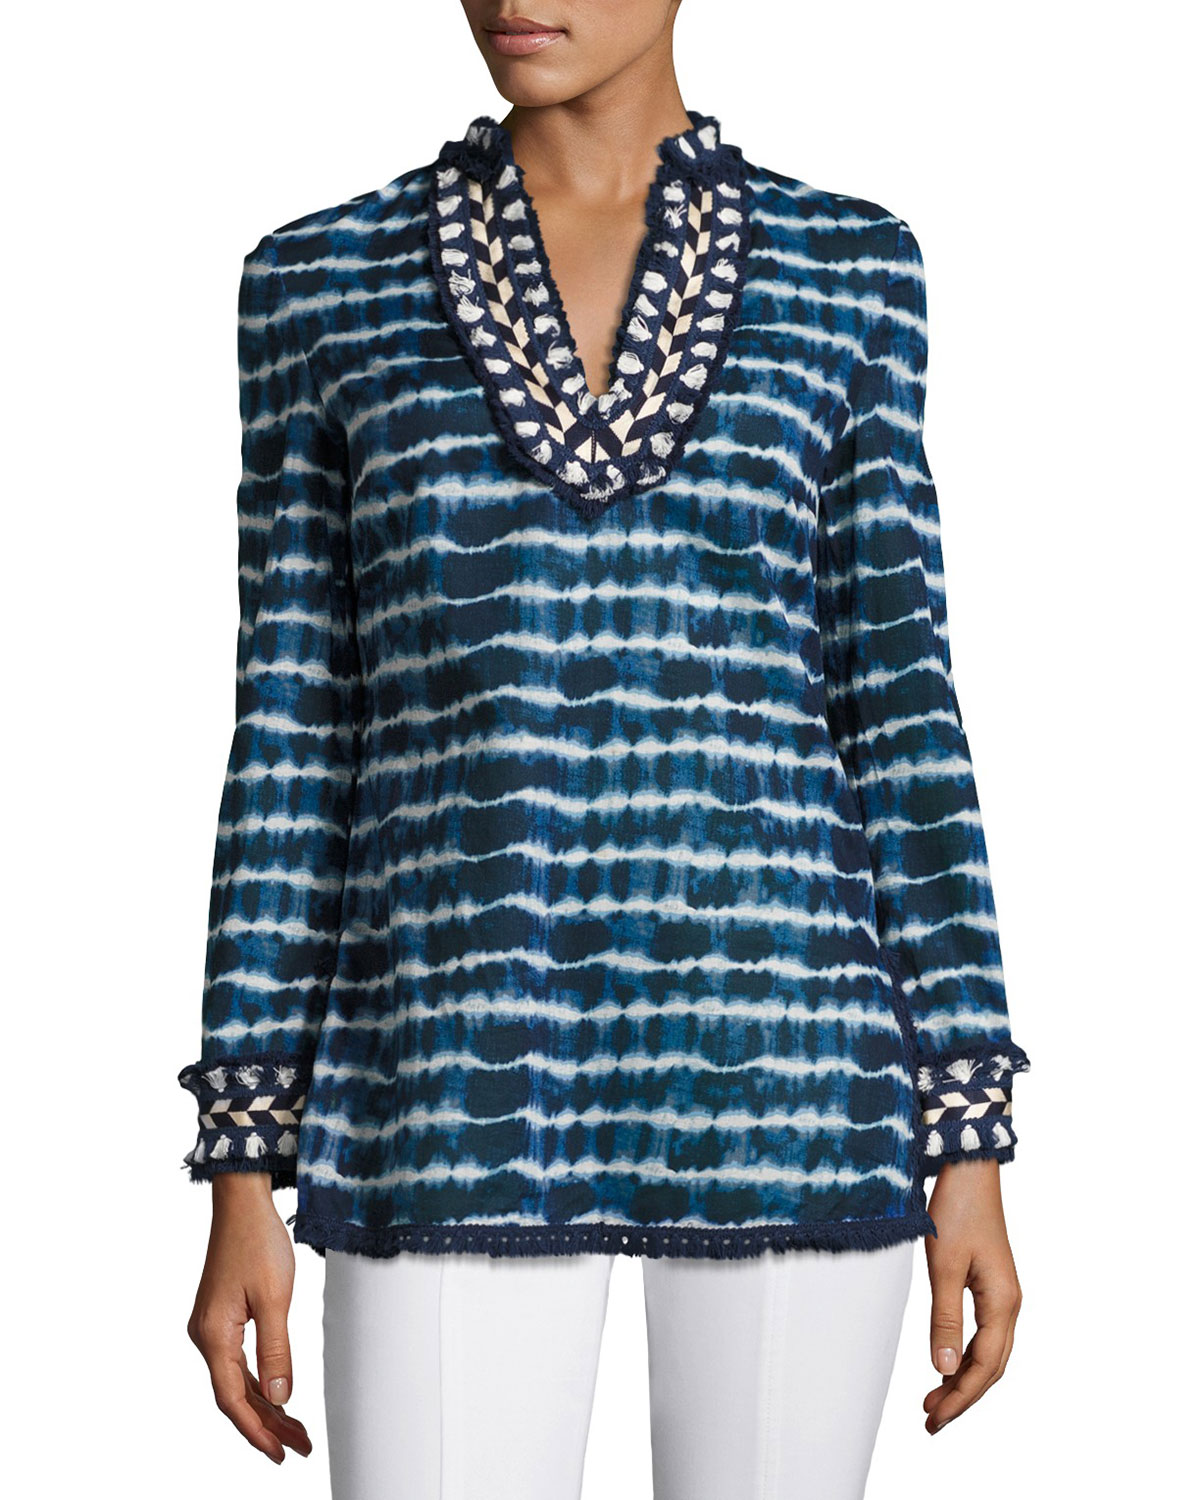 Tie-Dye Striped Tory Tunic, Blue/White